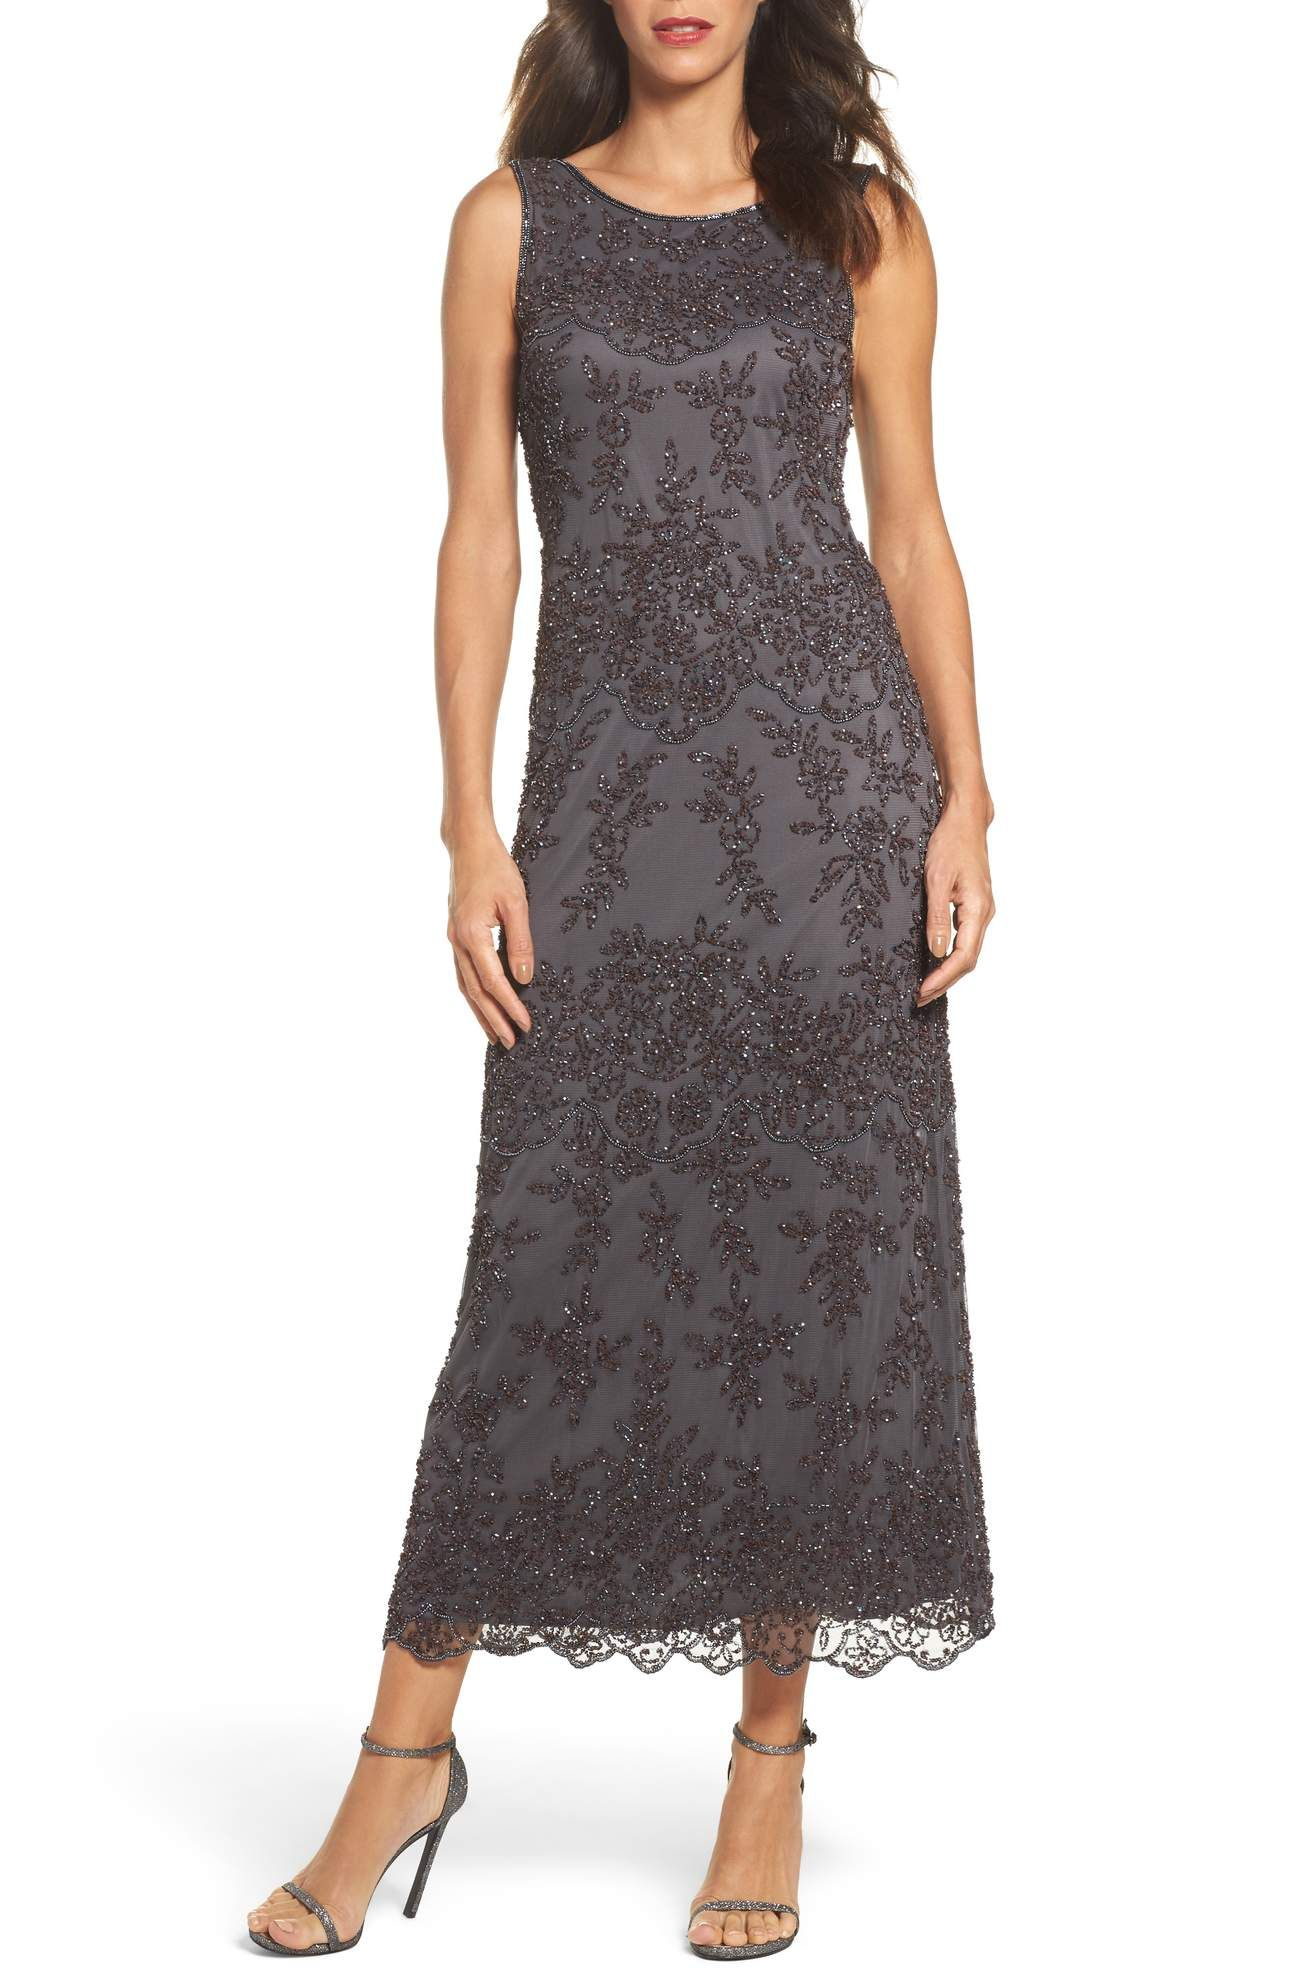 Mother of the bride wedding dresses nordstrom  Product Image   Wedding  Pinterest  Petite Gowns and Nordstrom